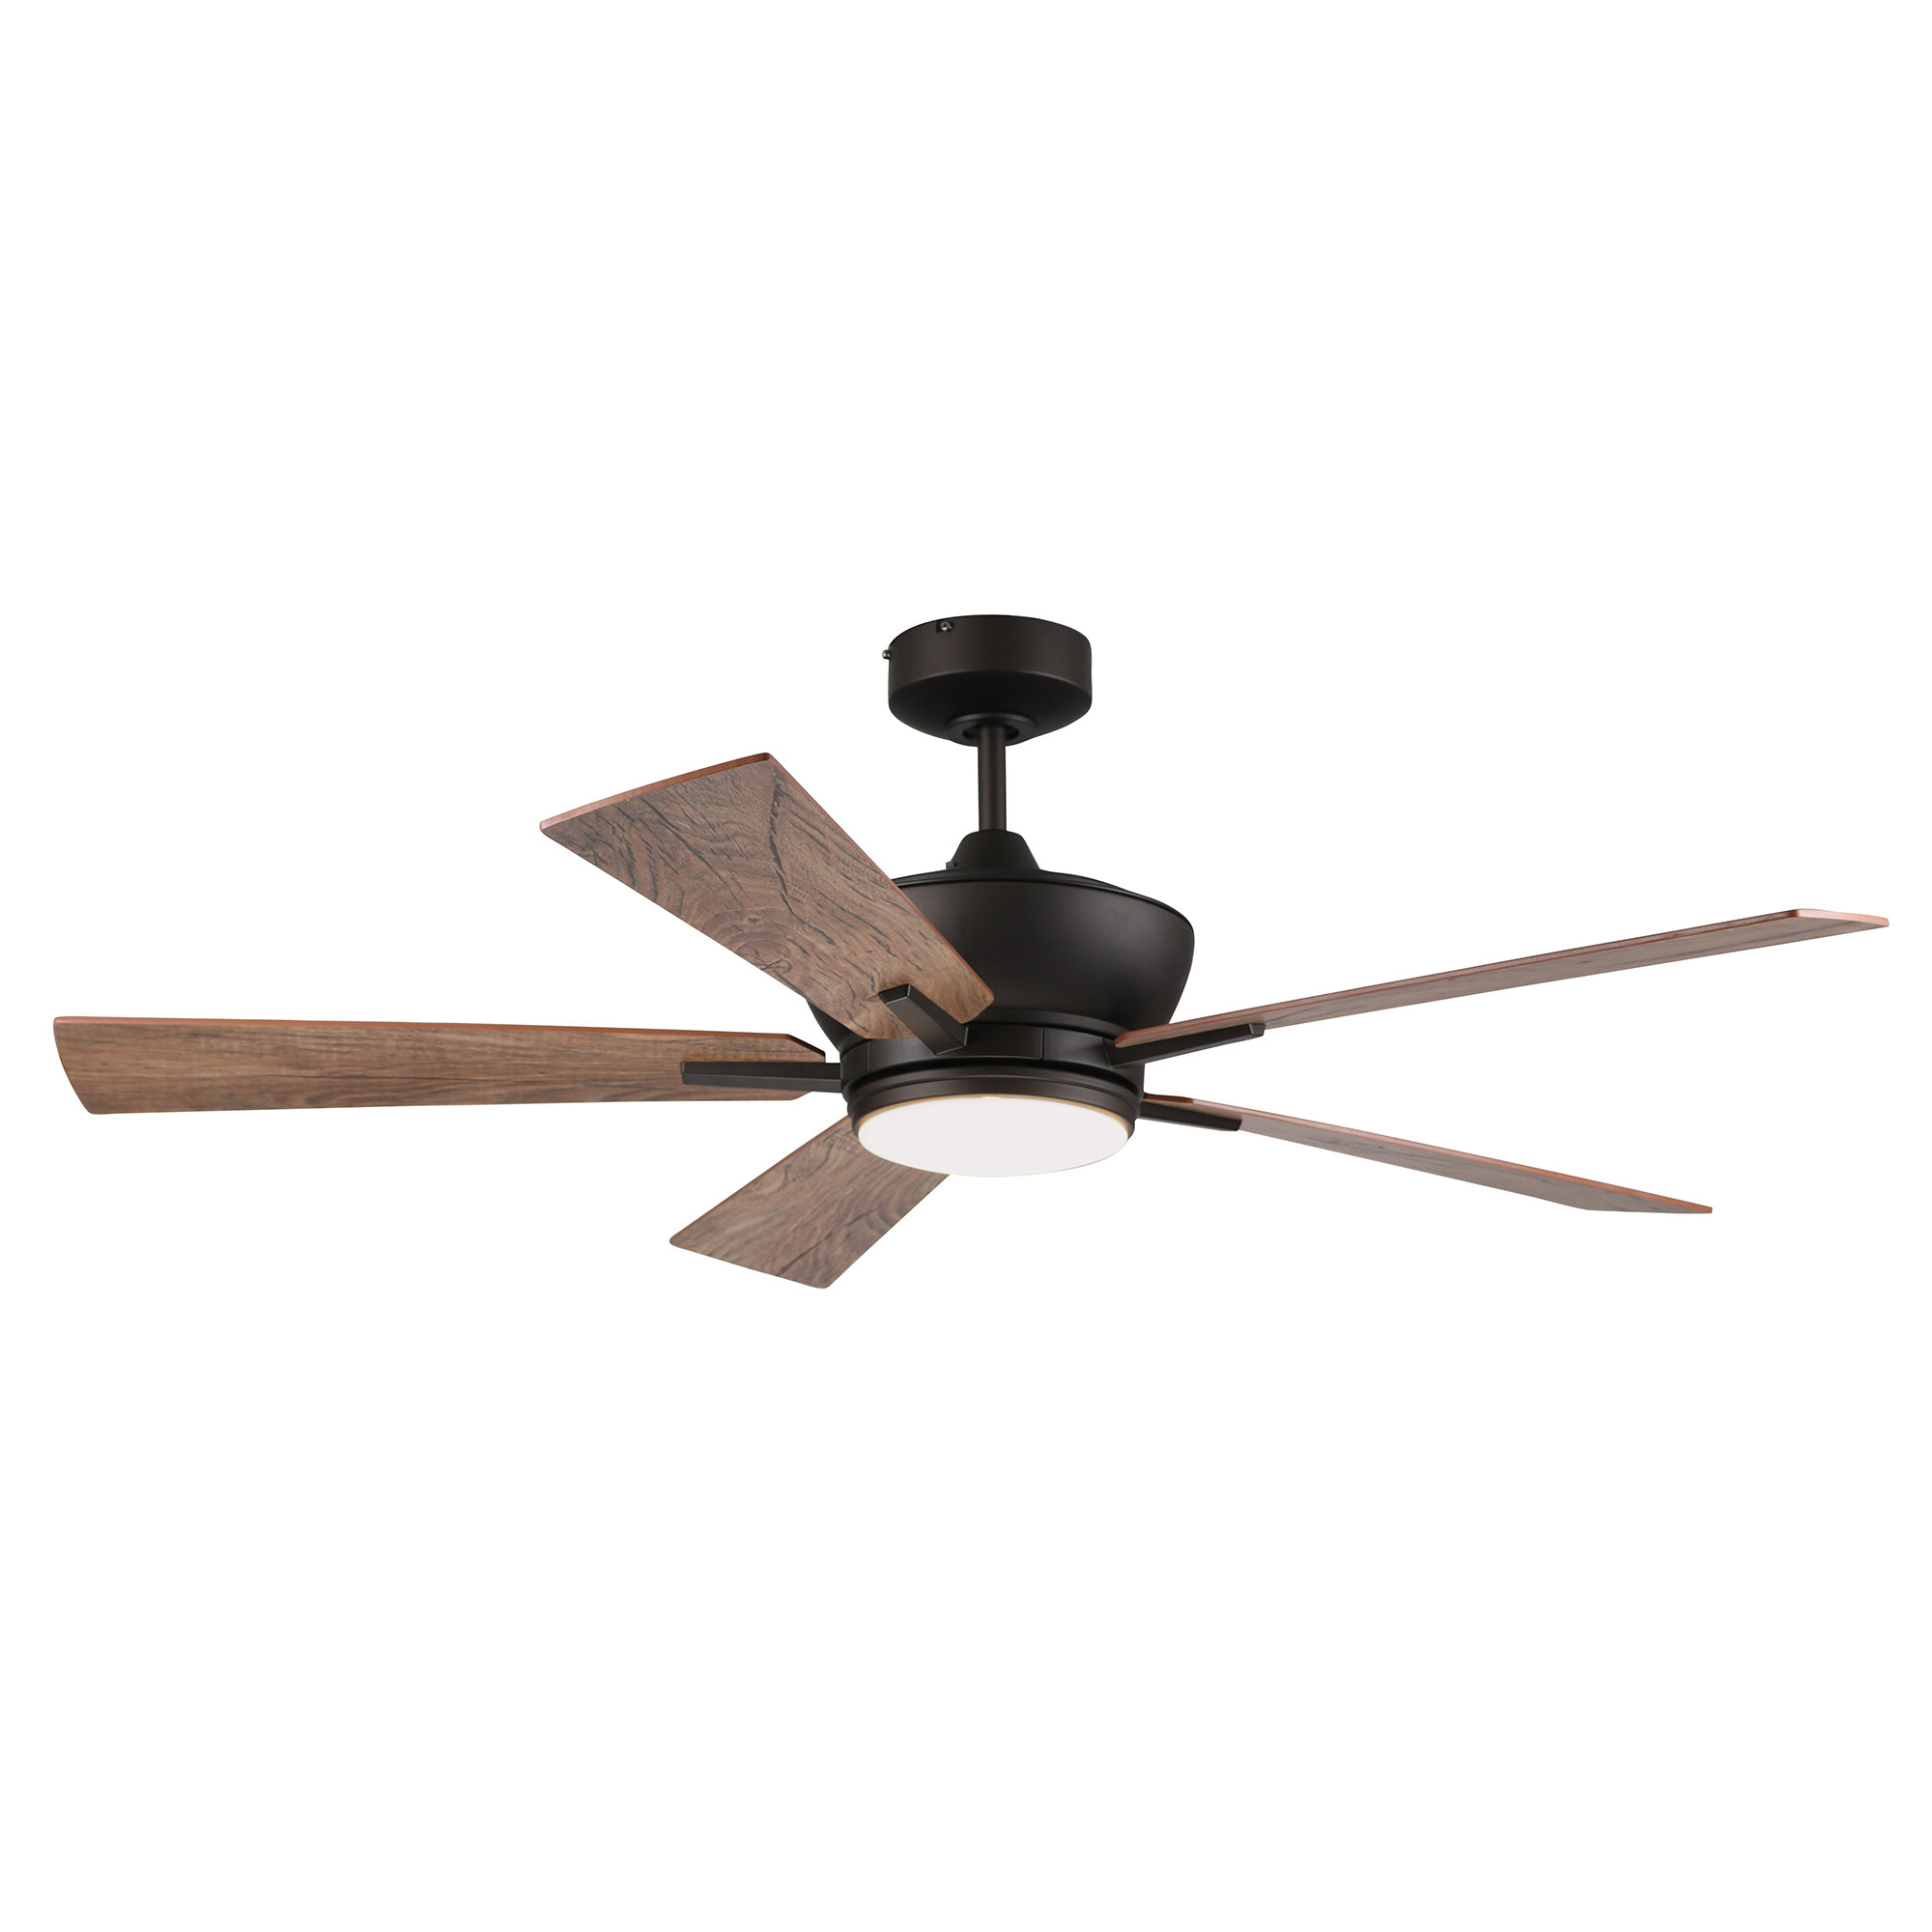 "Most Current 52"" Georgetown Tri Mount 5 Blade Ceiling Fan With Remote, Light Kit Included Within Blomquist 5 Blade Outdoor Ceiling Fans (View 10 of 20)"